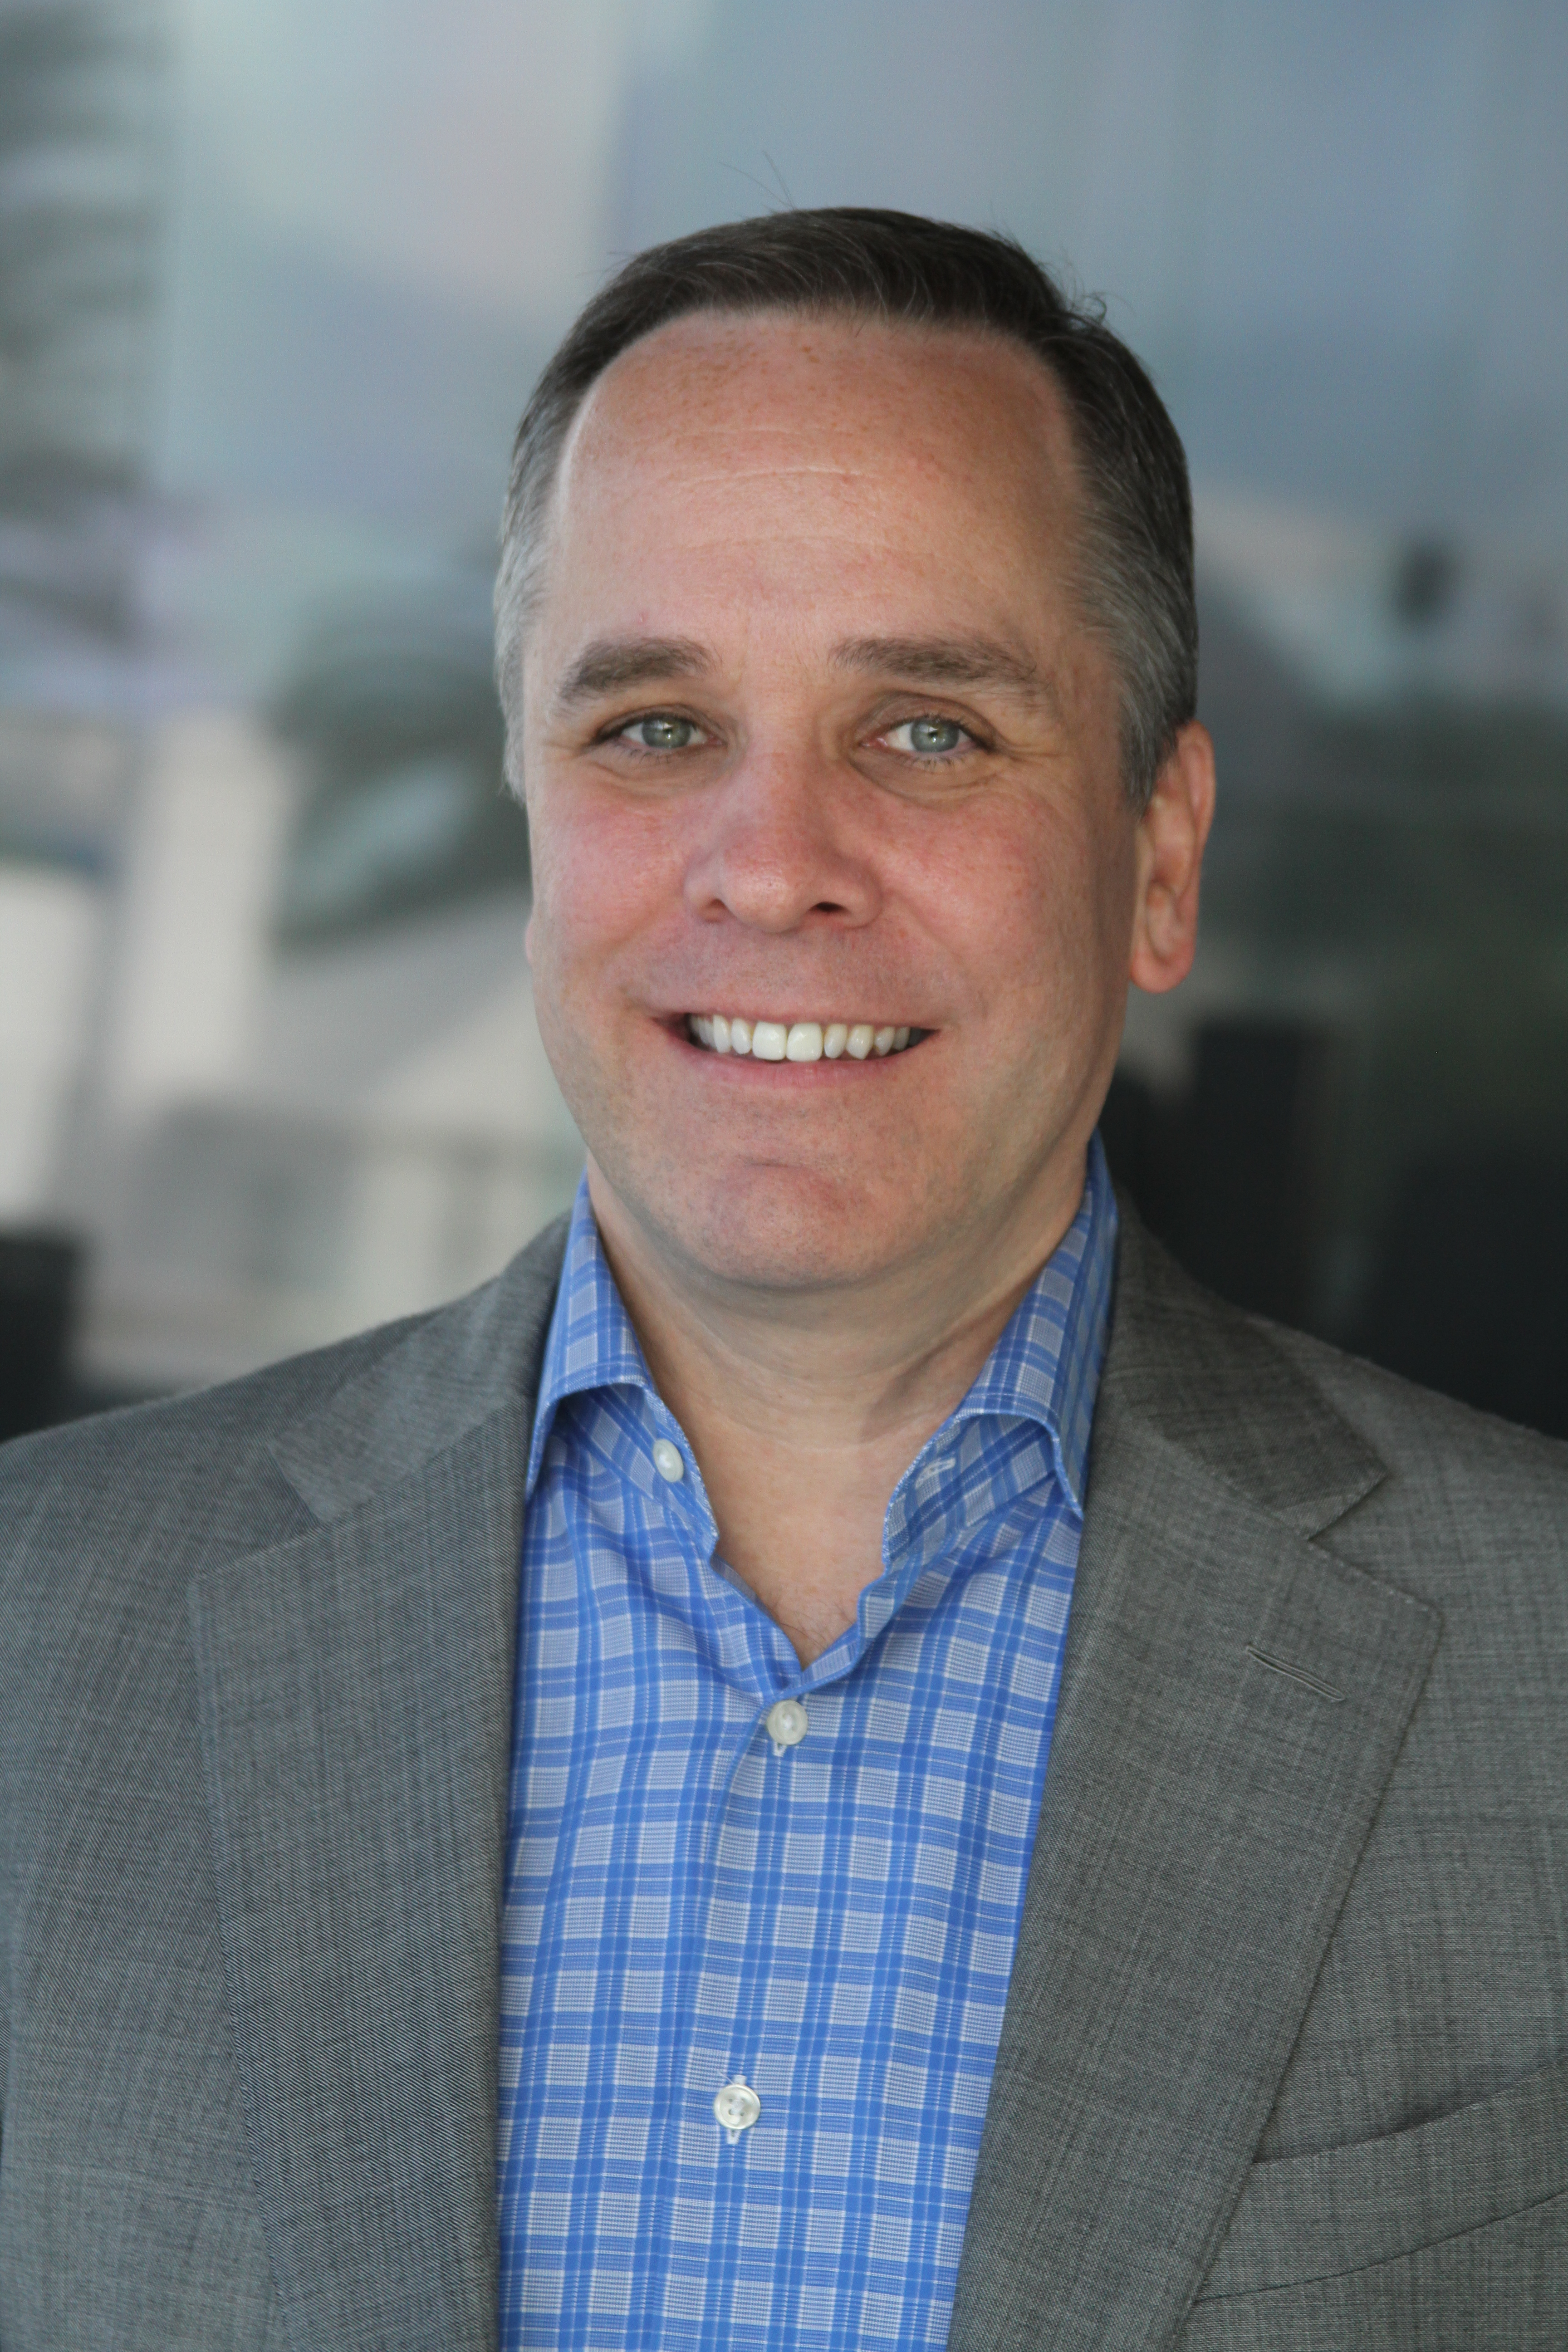 Bacardi Limited, the largest privately held spirits company in the world, today announces the appointment of Kevin F. McNamara as Senior Vice President and Chief Financial Officer (CFO), responsible for its global financial operations. (Photo:` Business Wire)